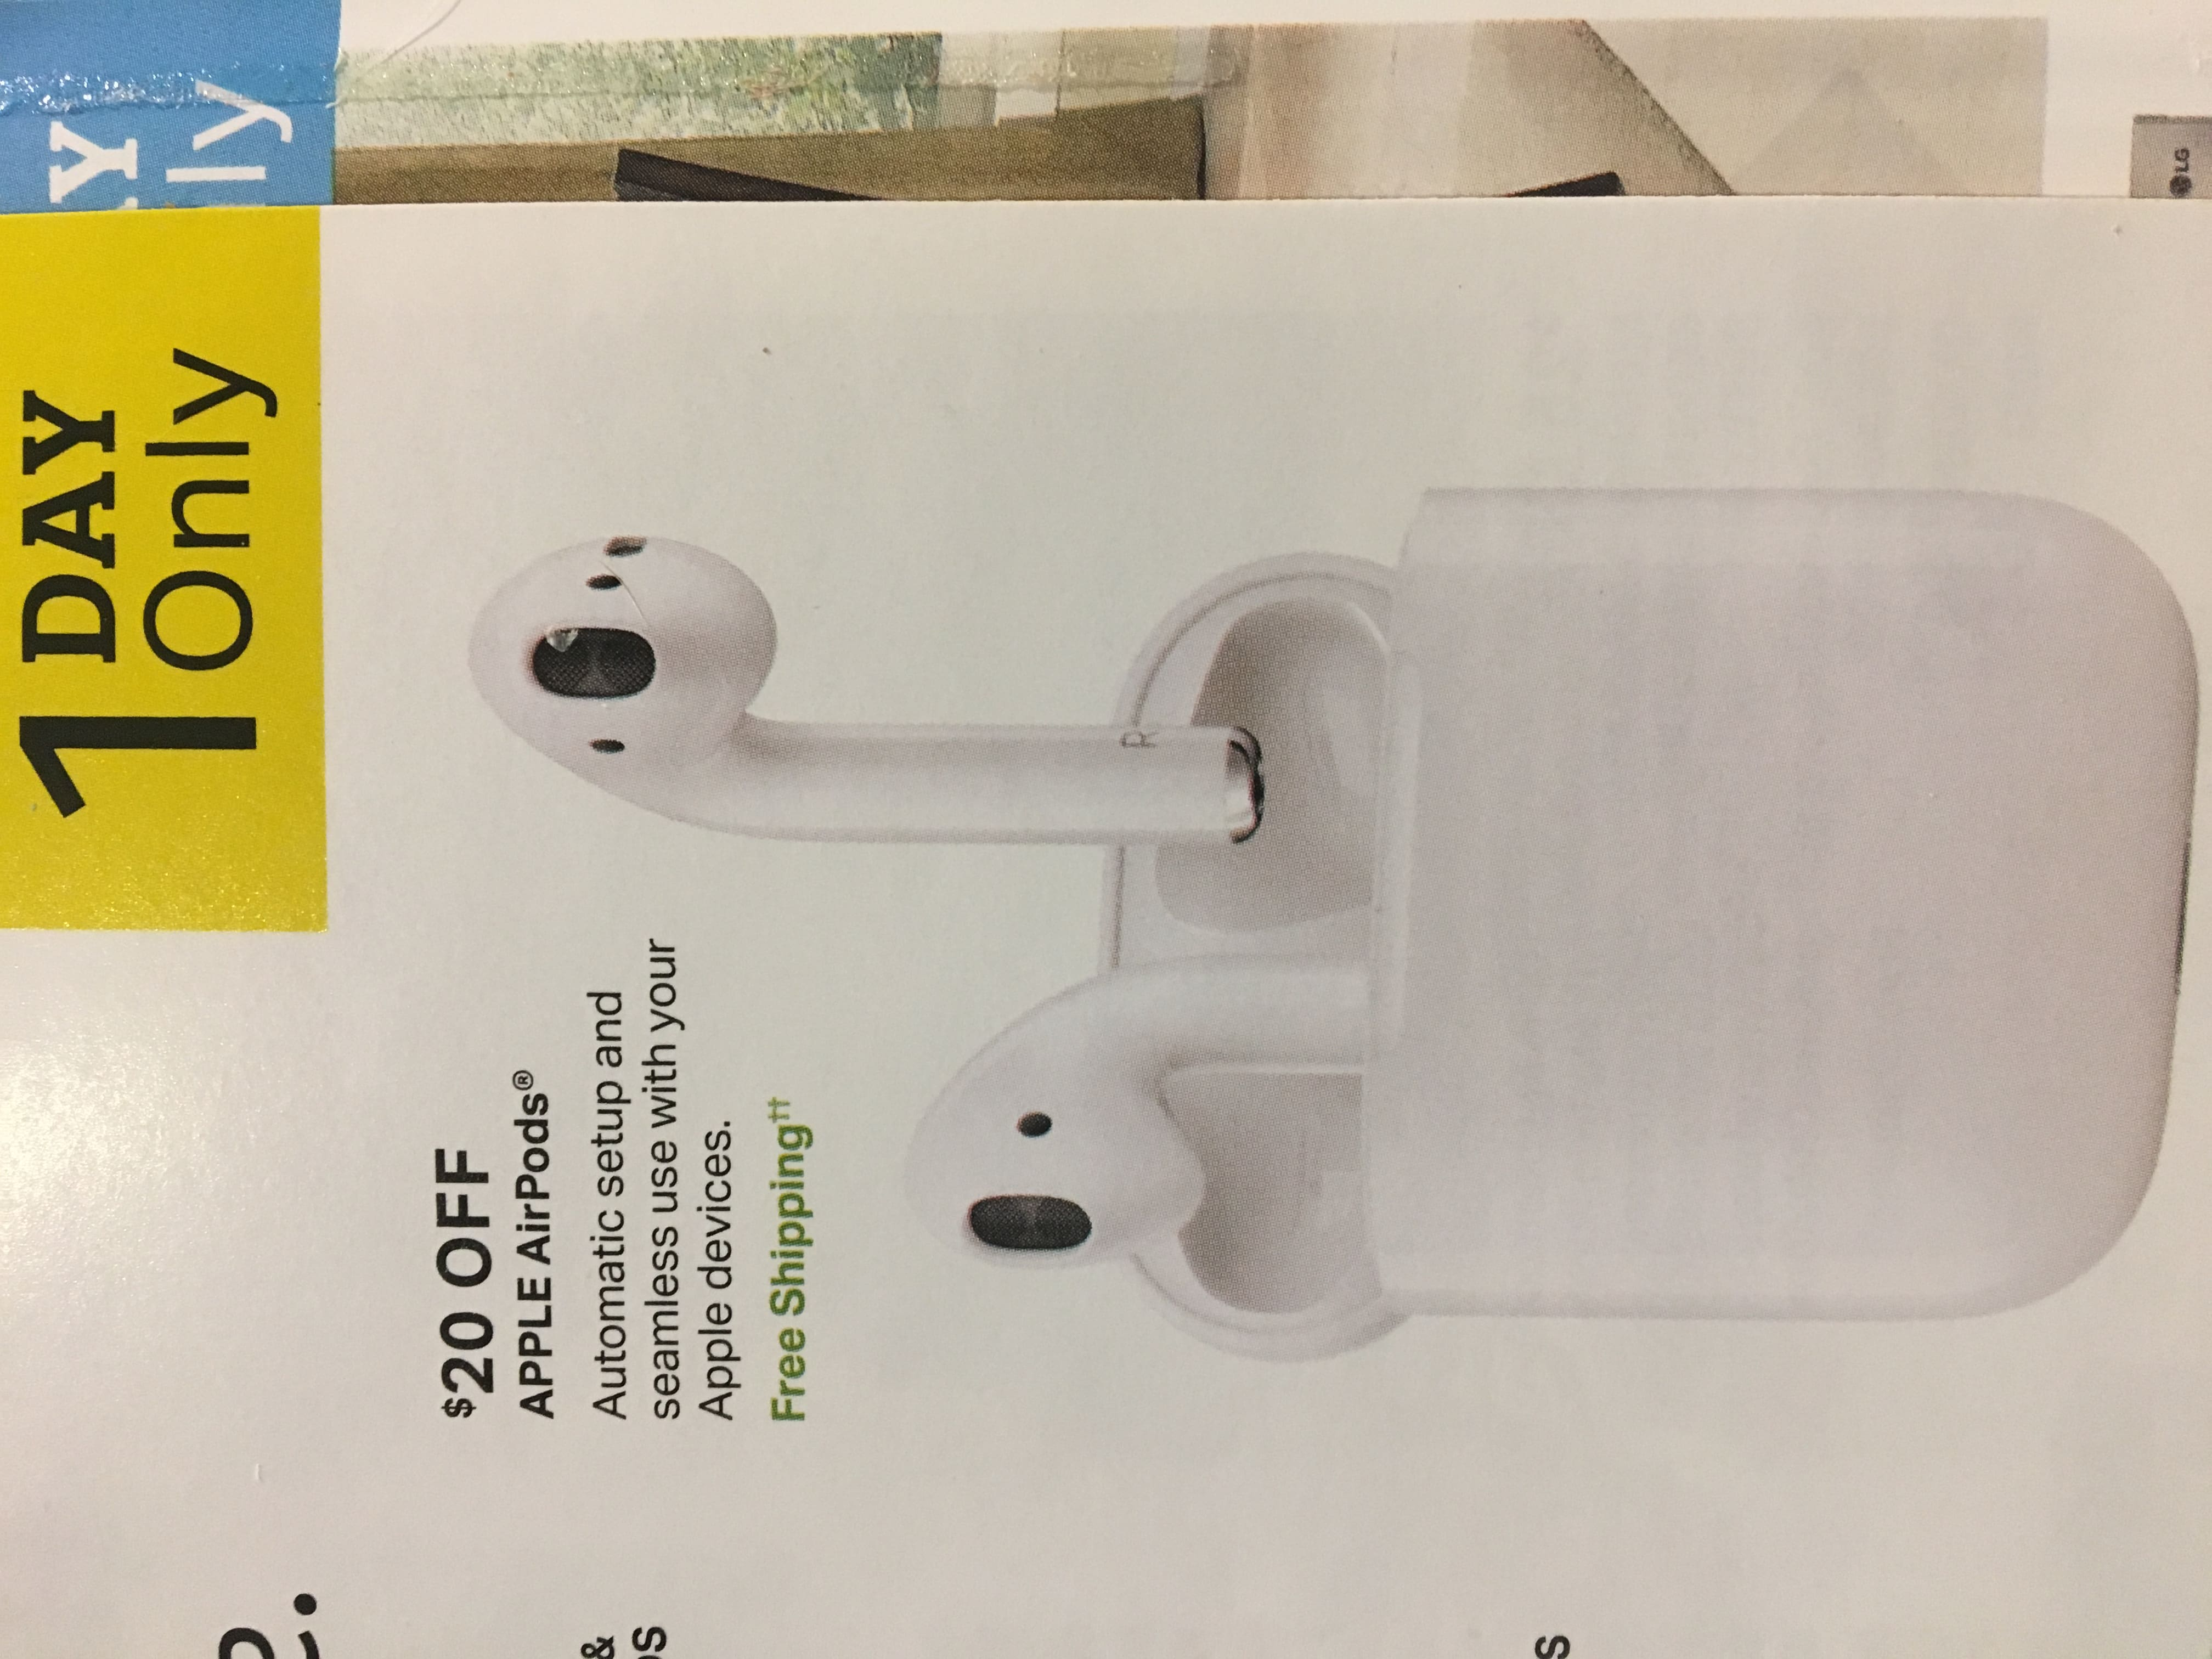 0d3f26dd62 Sams Club 5 12 Only  Apple AirPods  139